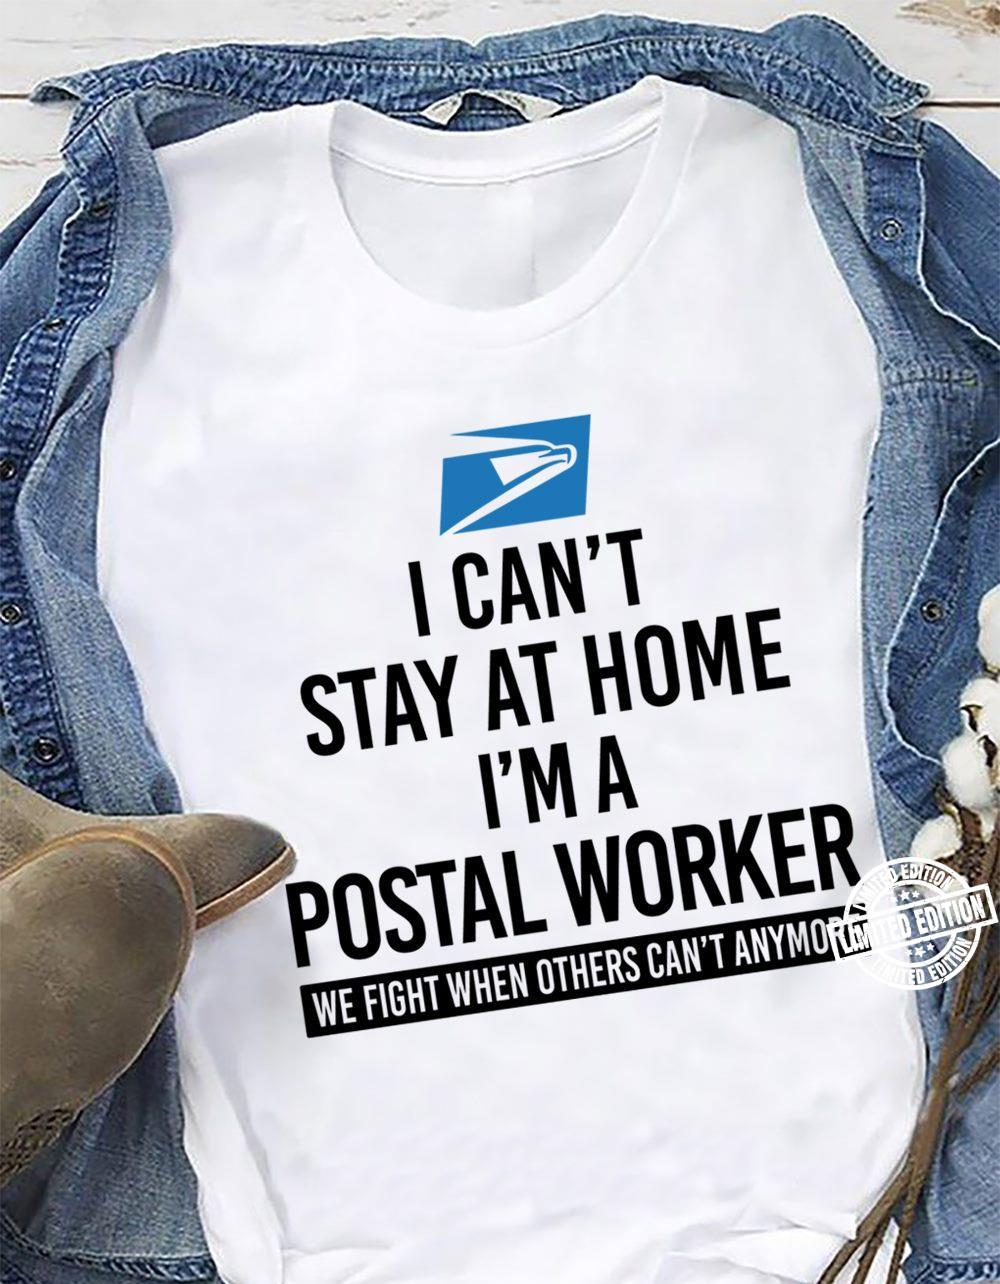 I can't stay at home I'm a postal worker we fight when others can't anymore shirt